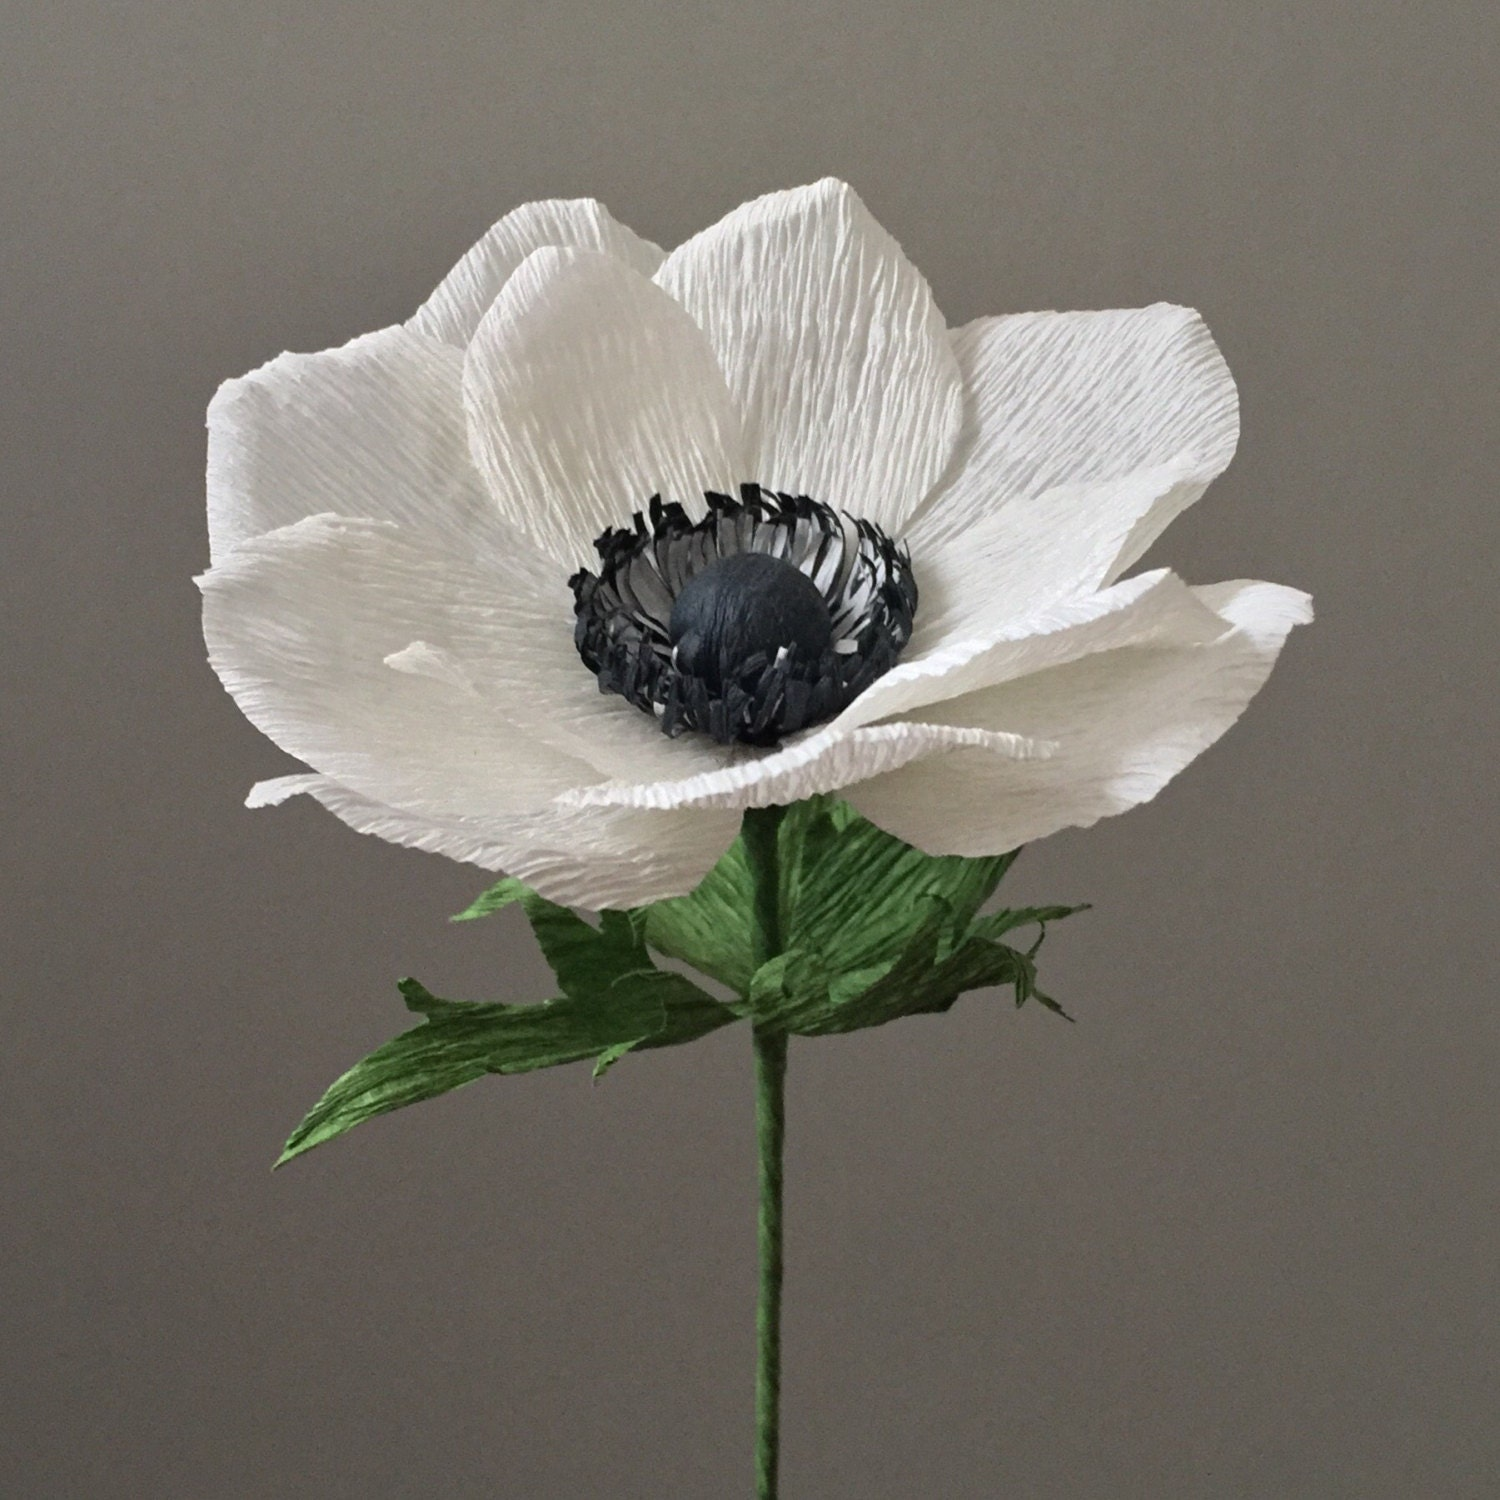 Crepe paper anemone single stem wedding flowers by for Crepe paper wall flowers